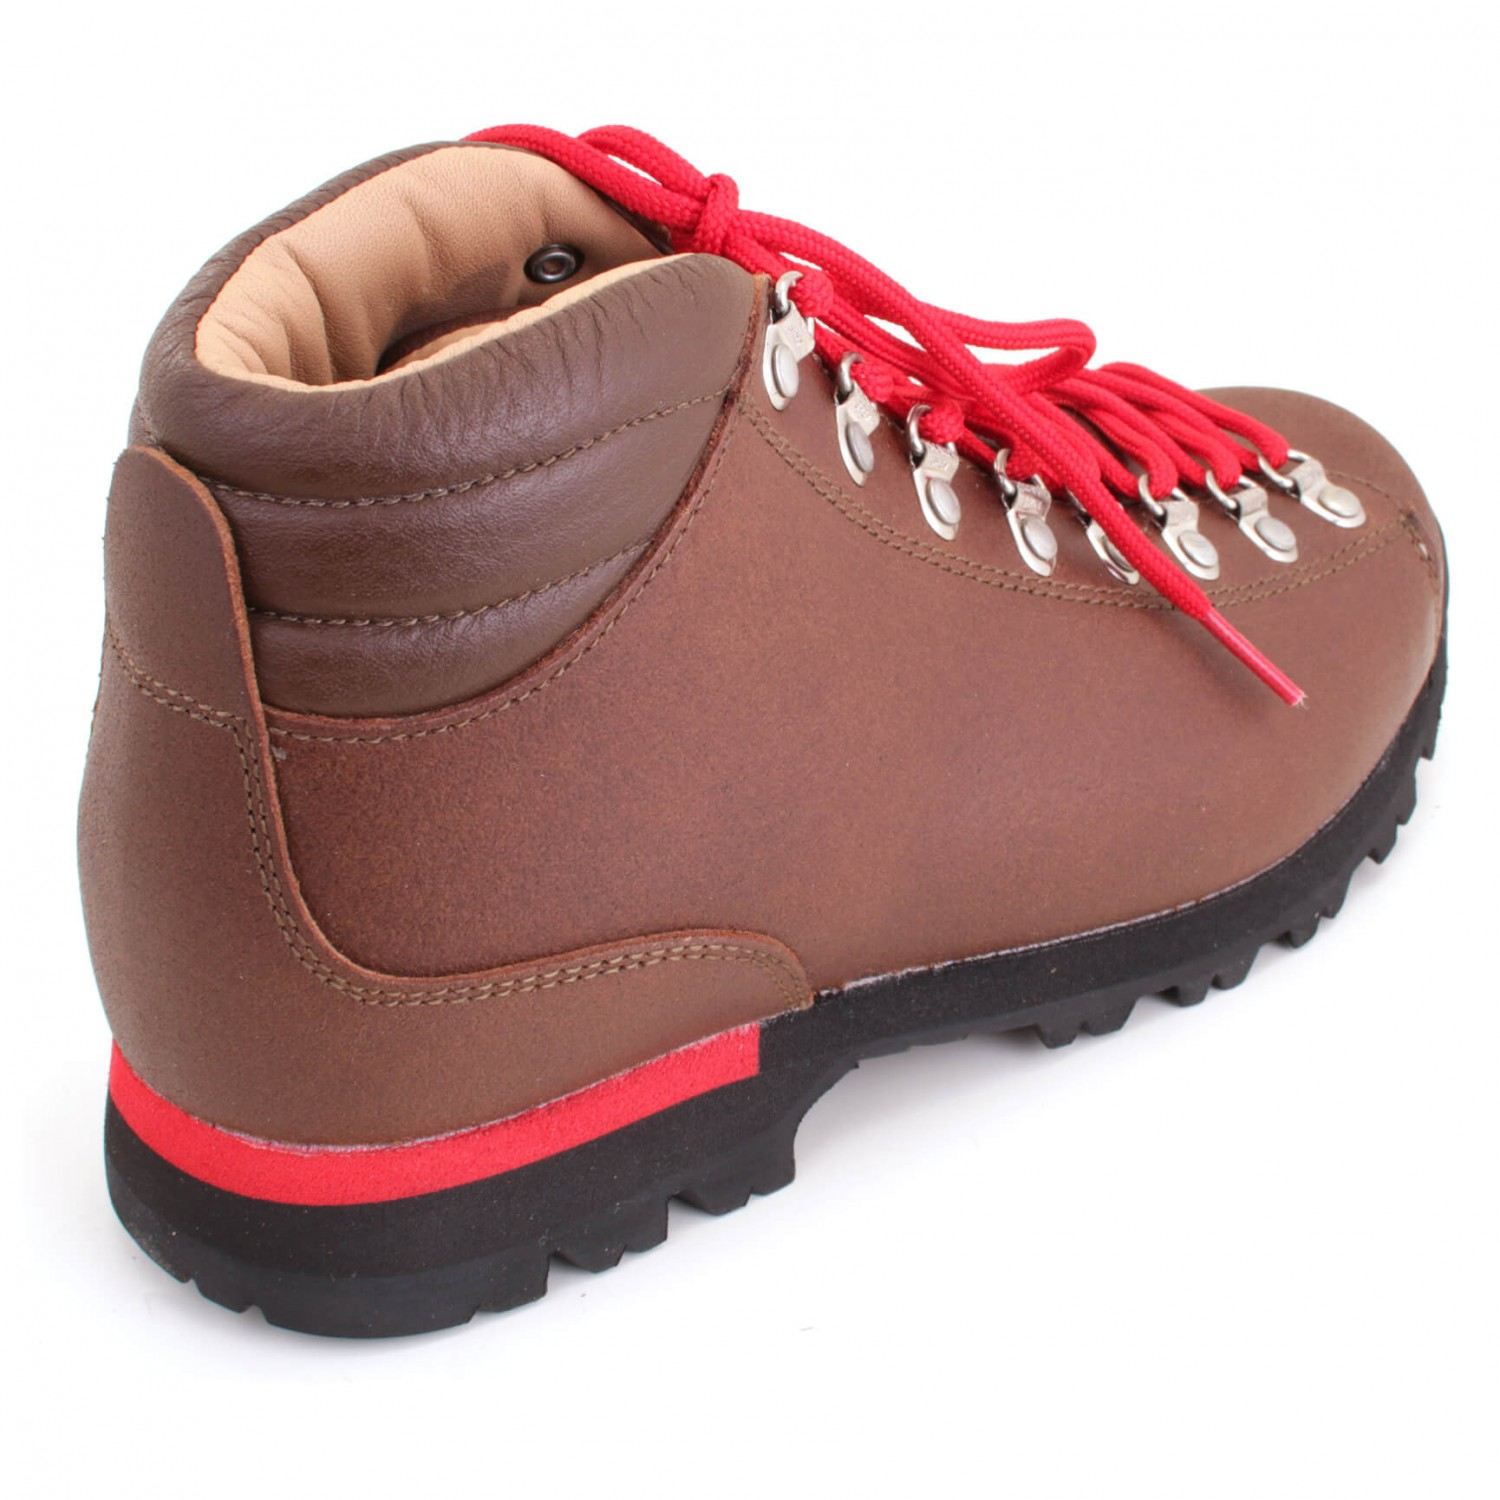 Scarpa Primitive Walking Boots Free Uk Delivery